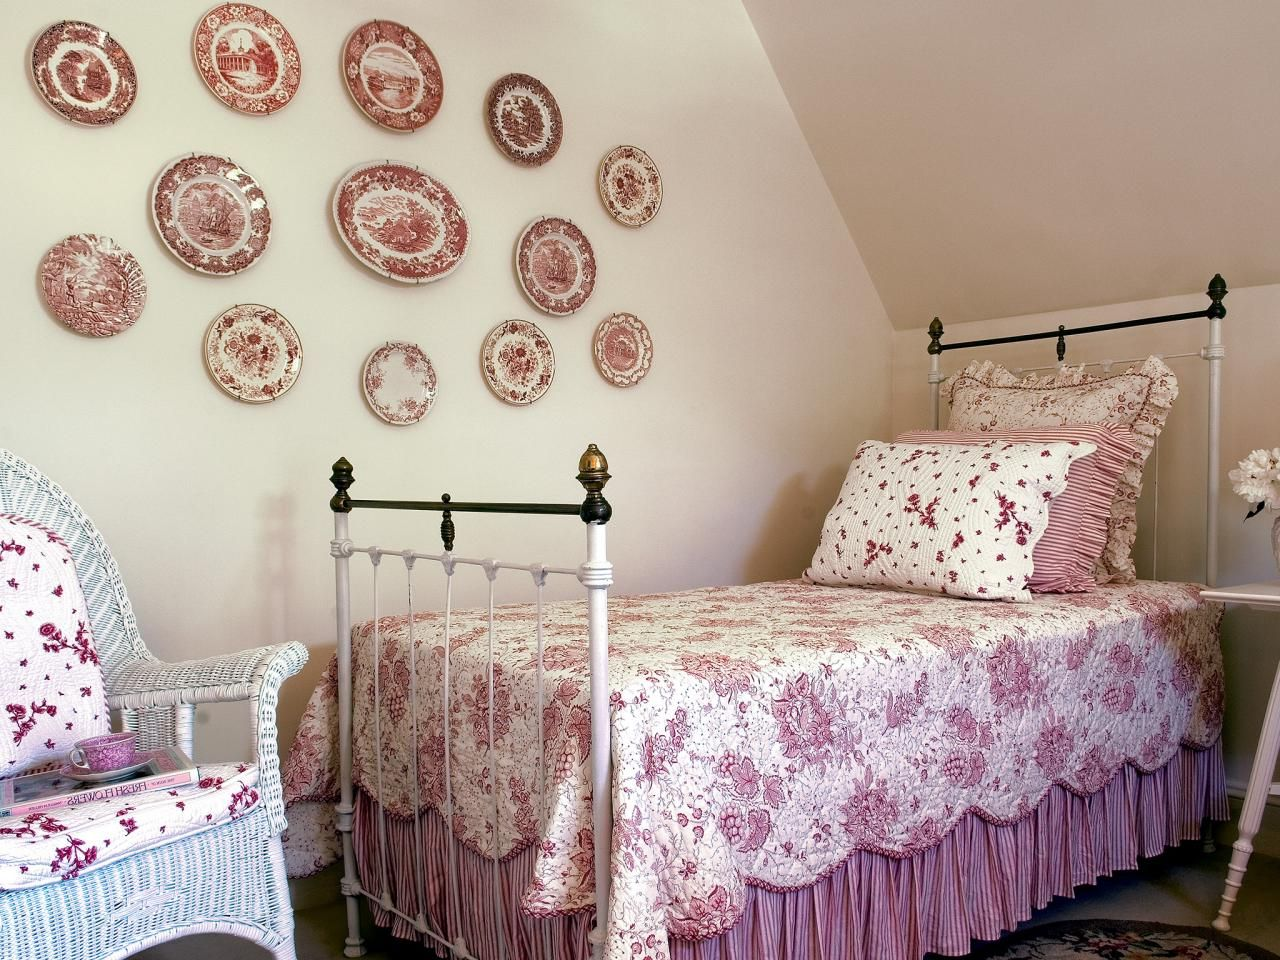 beautiful-vintage-attic-bedroom-for-girl-with-chic-vintage-decorative-wall-plates-over-the-bed